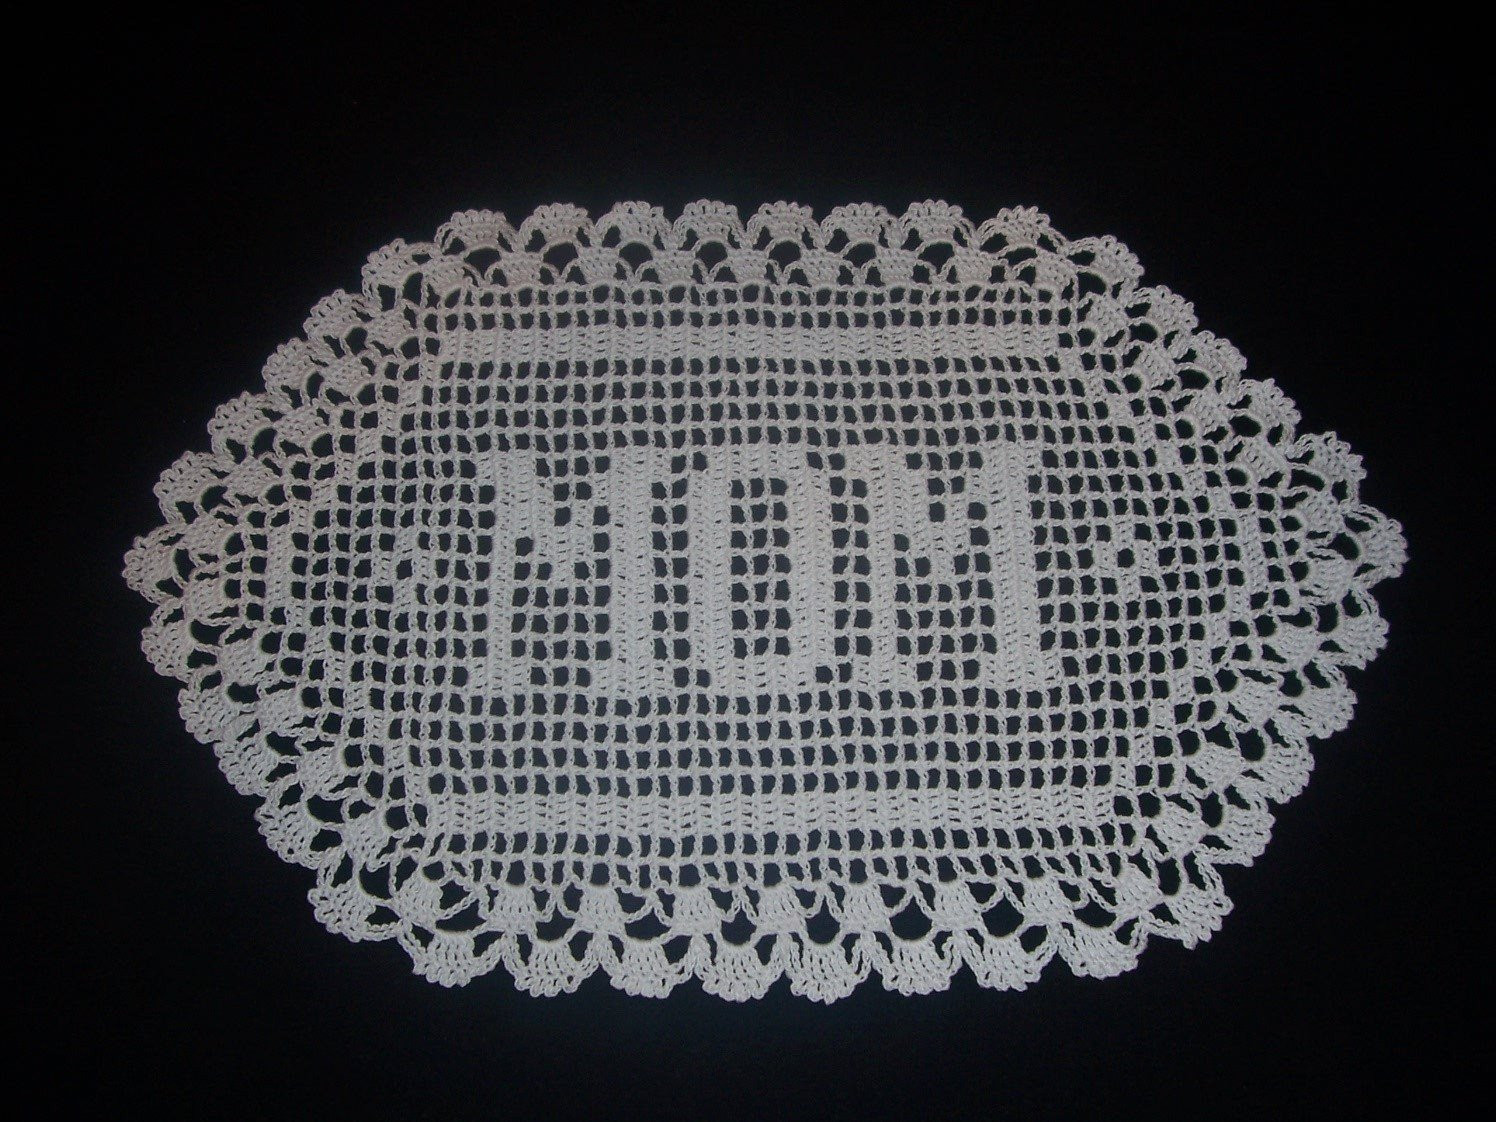 Crochet Name Doily New Handmade Mom Filet Crochet Name Doily by Heirloomcrochet Of Lovely 45 Images Crochet Name Doily